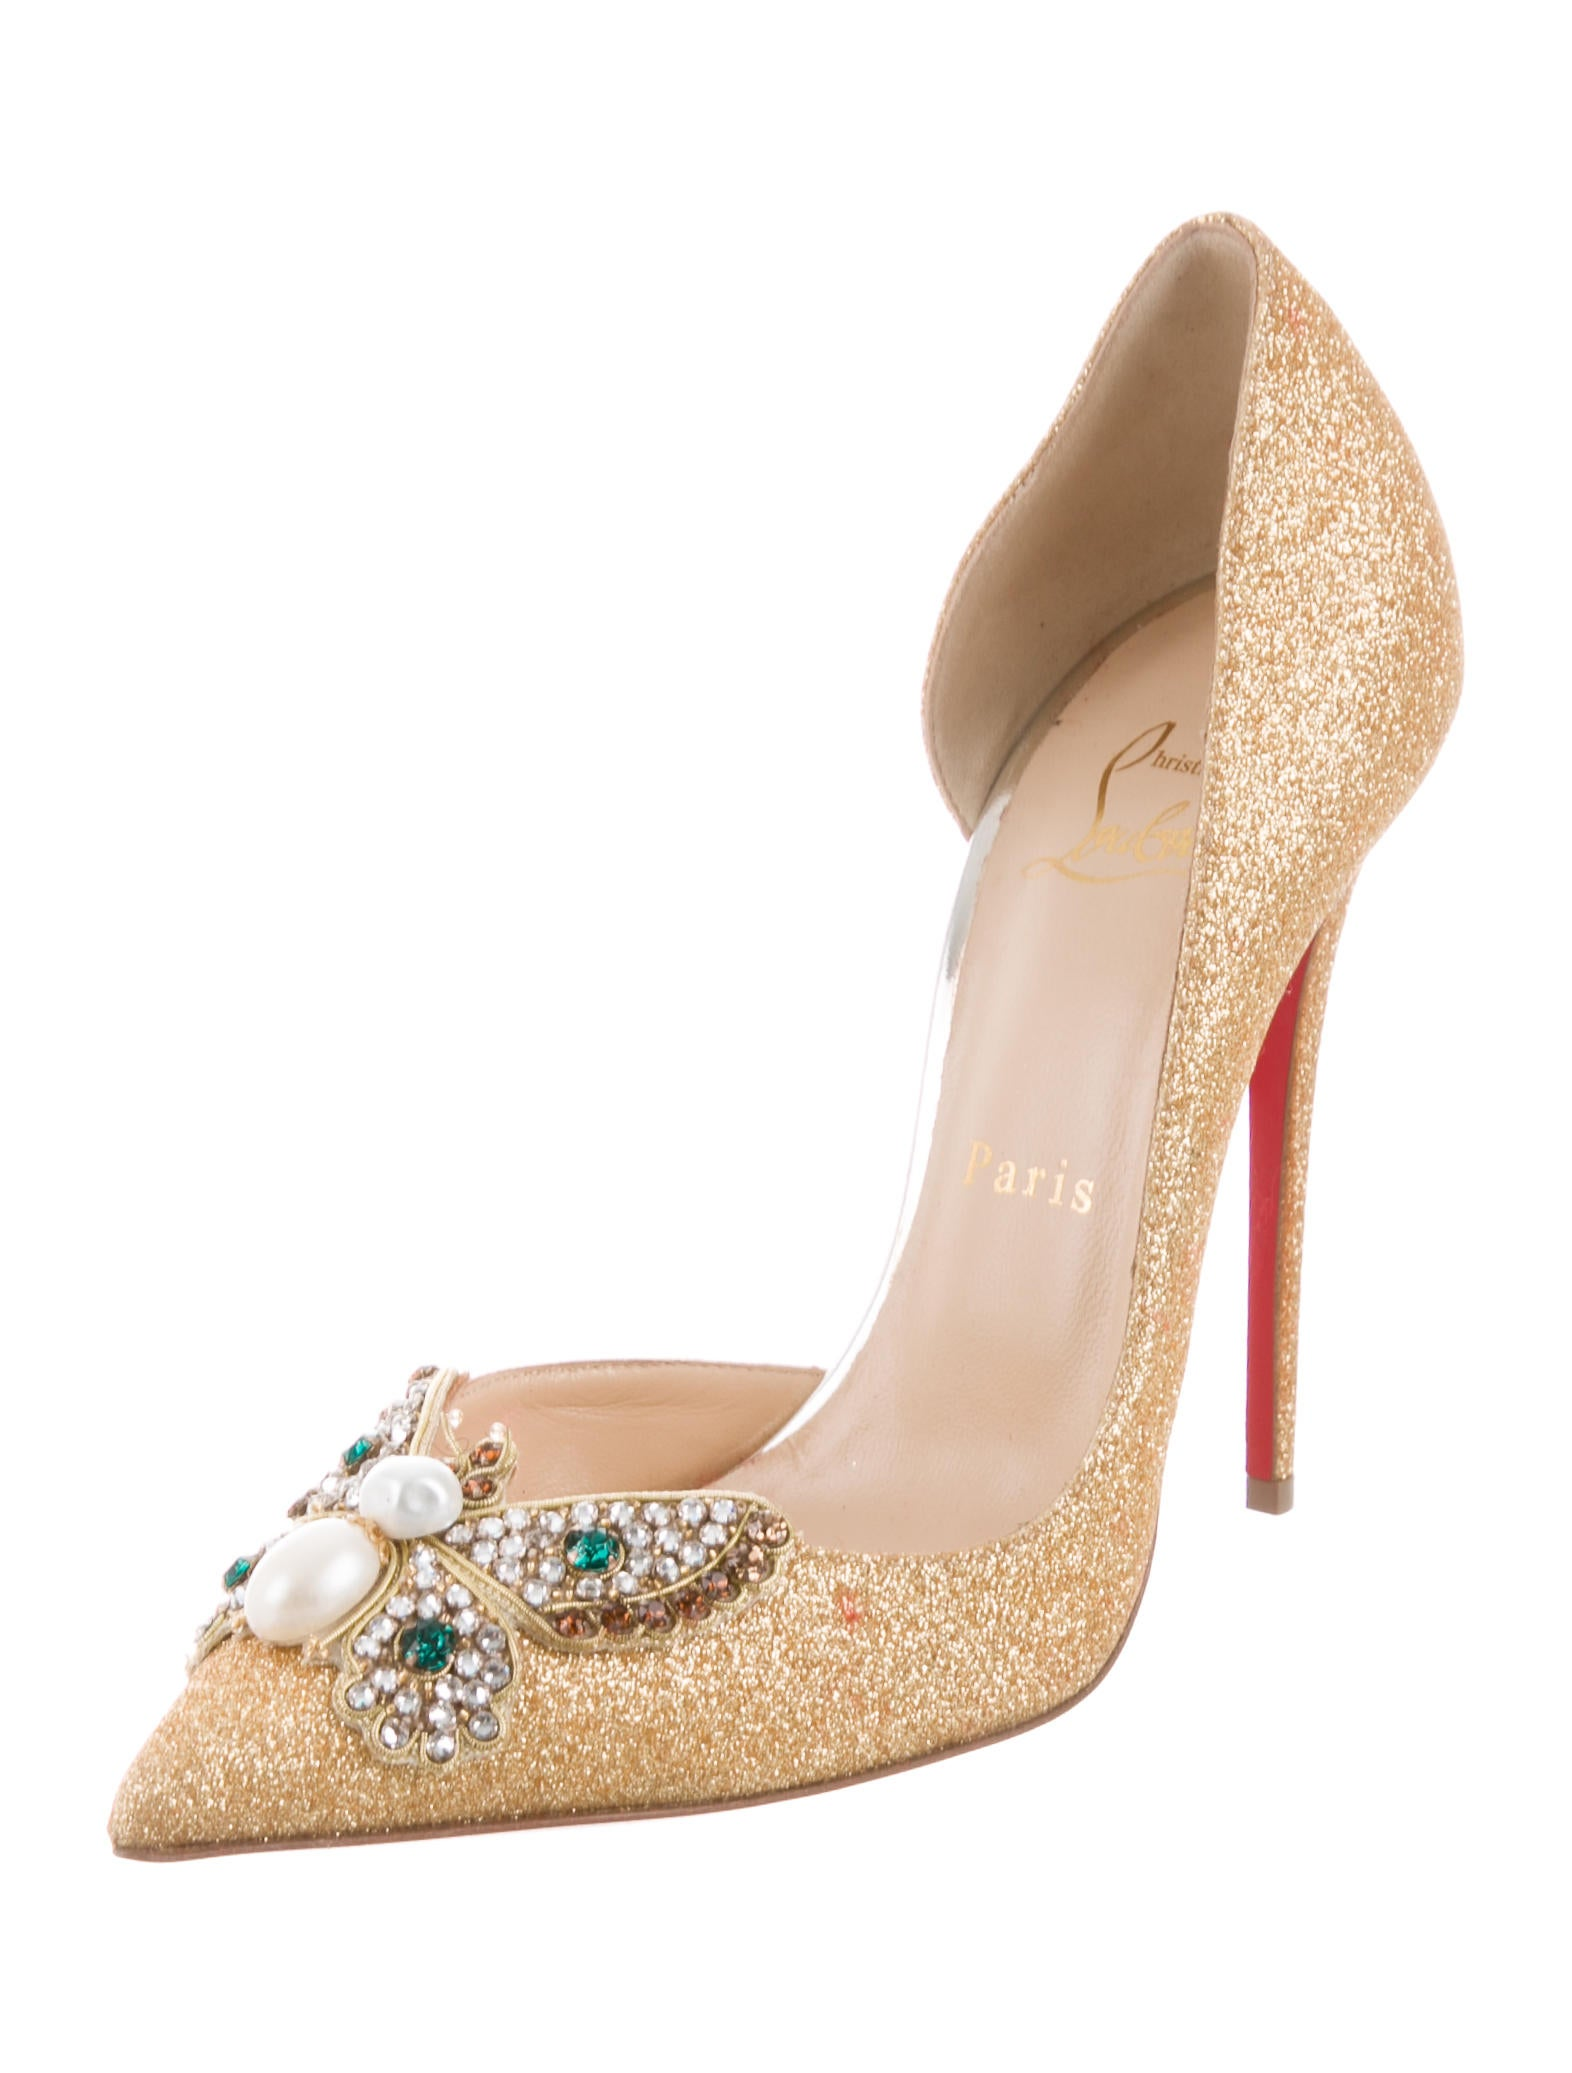 Christian Louboutin Barzas Butterfly-Accented Pumps the cheapest for sale discount wide range of for sale official site 4HP04